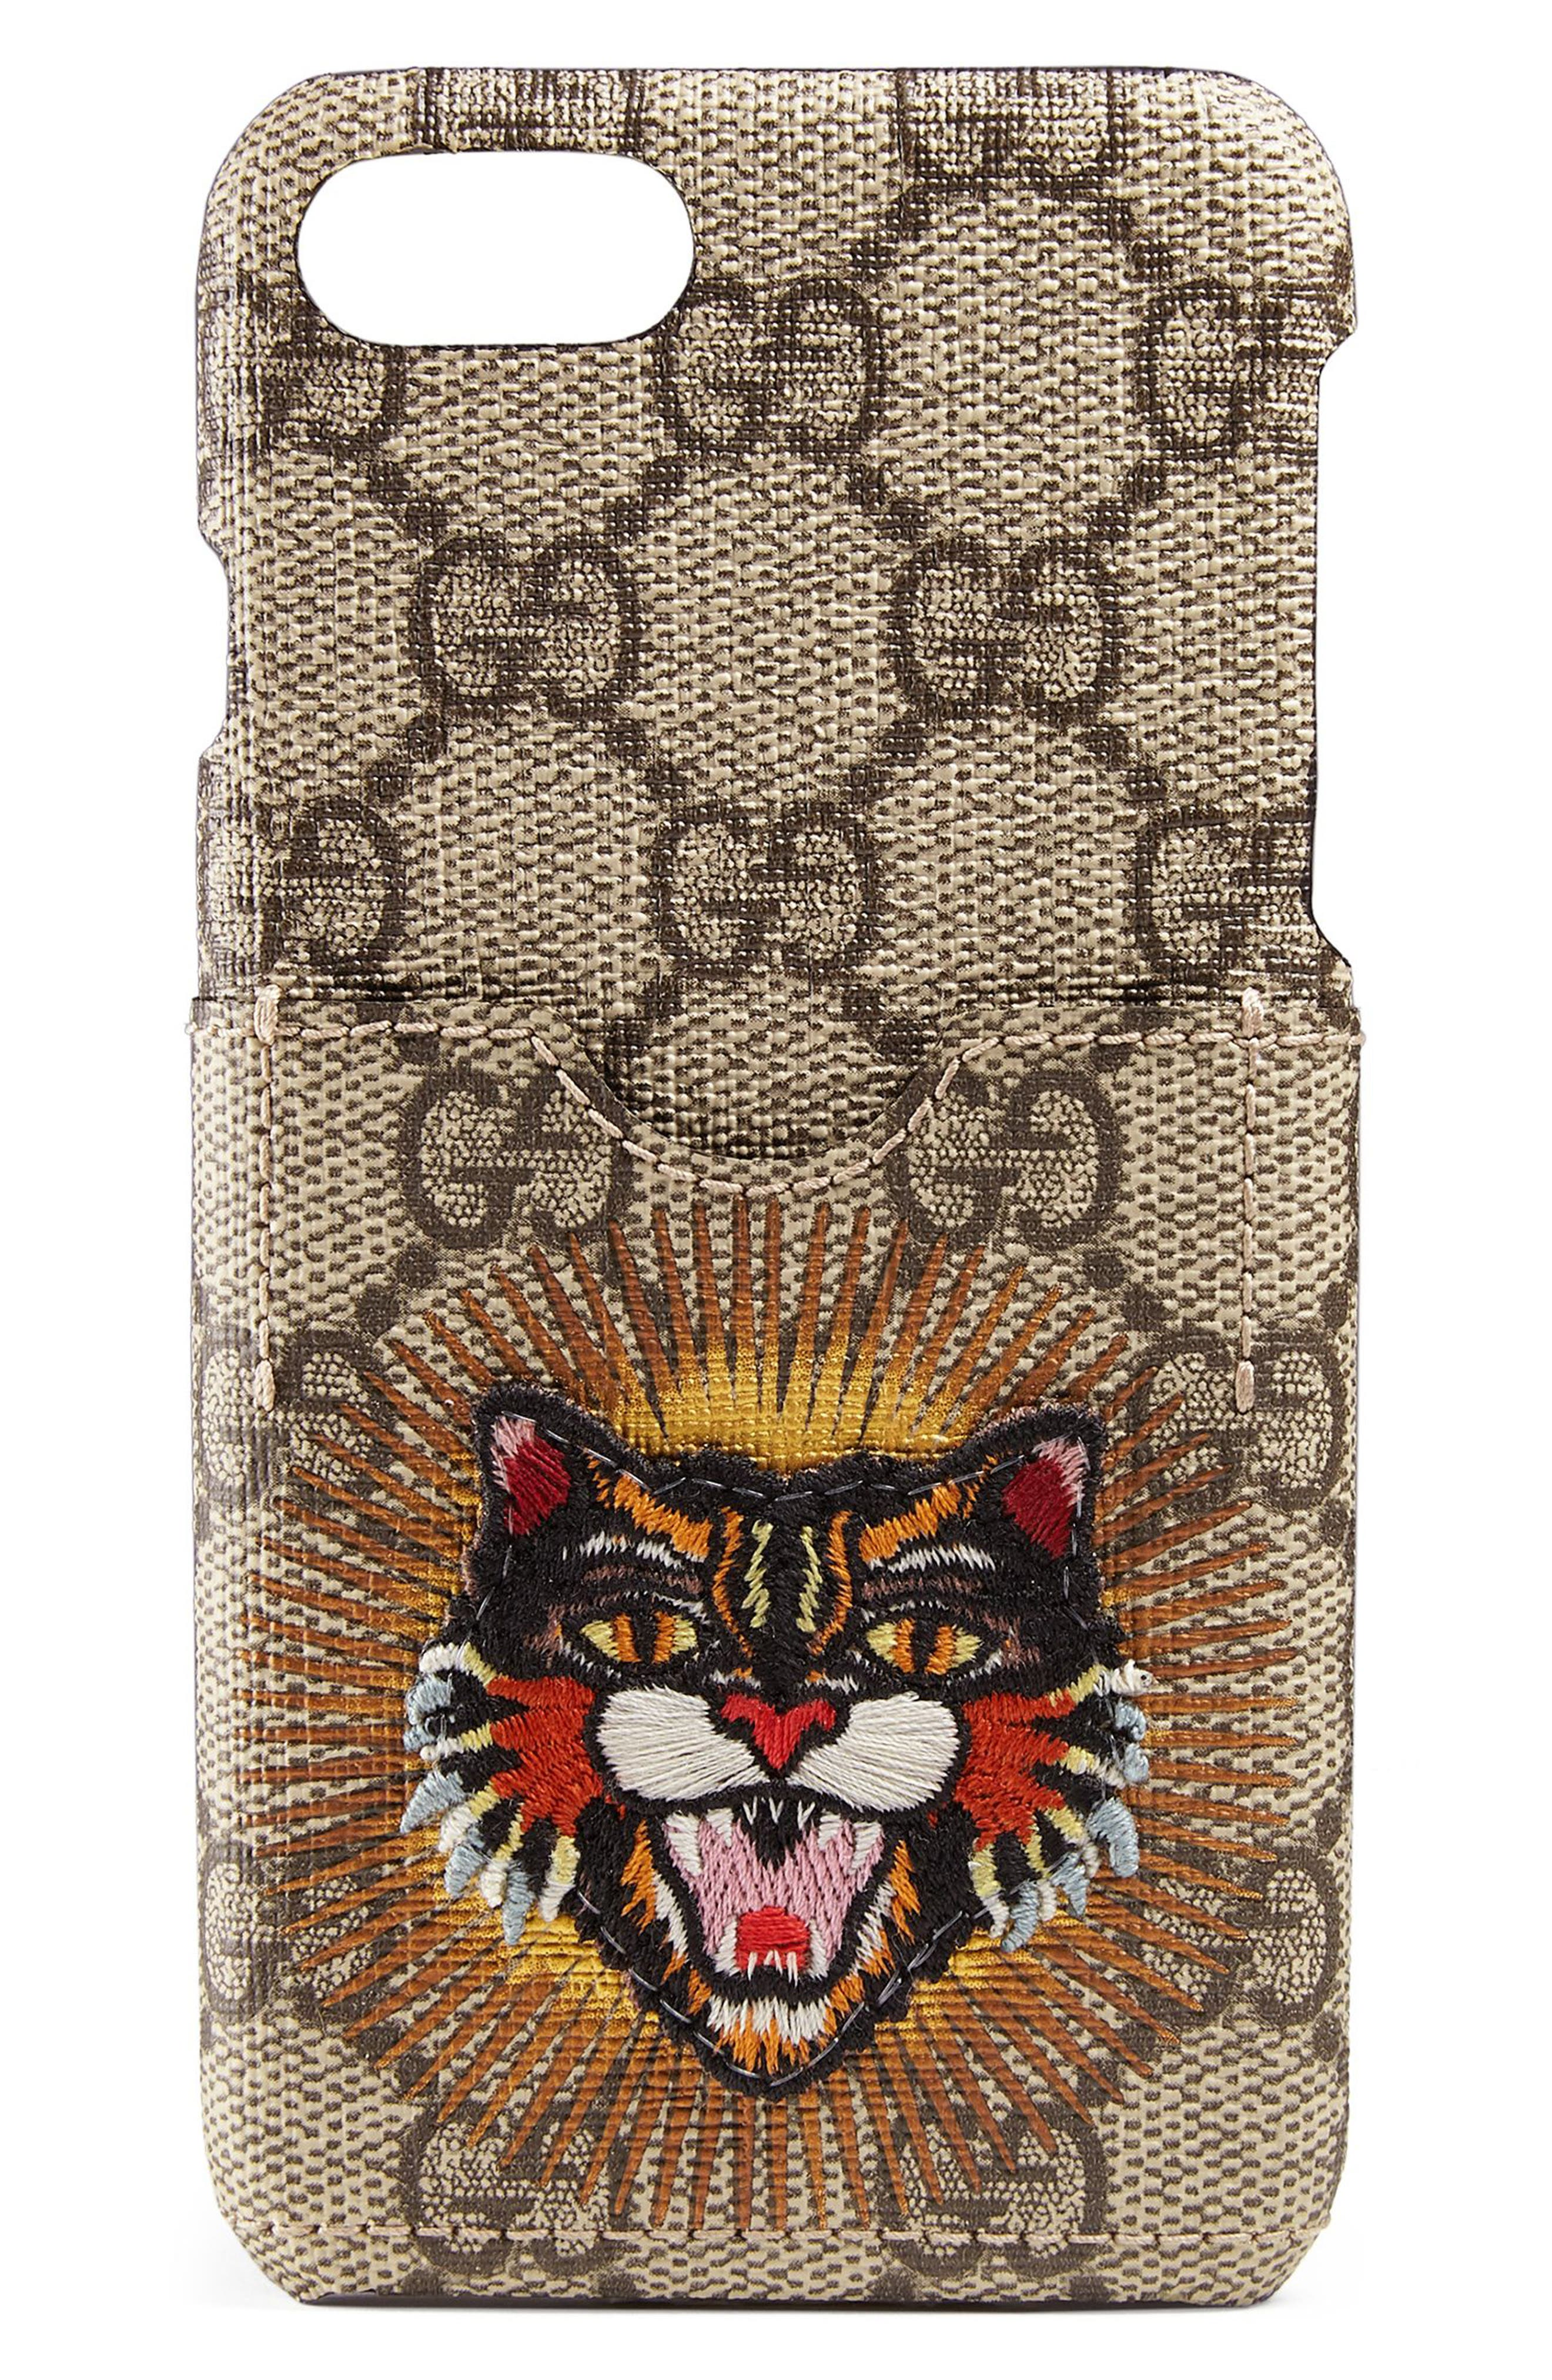 Embroidered Angry Cat GG Supreme iPhone 7 Case,                         Main,                         color, Beige Ebony/Multi